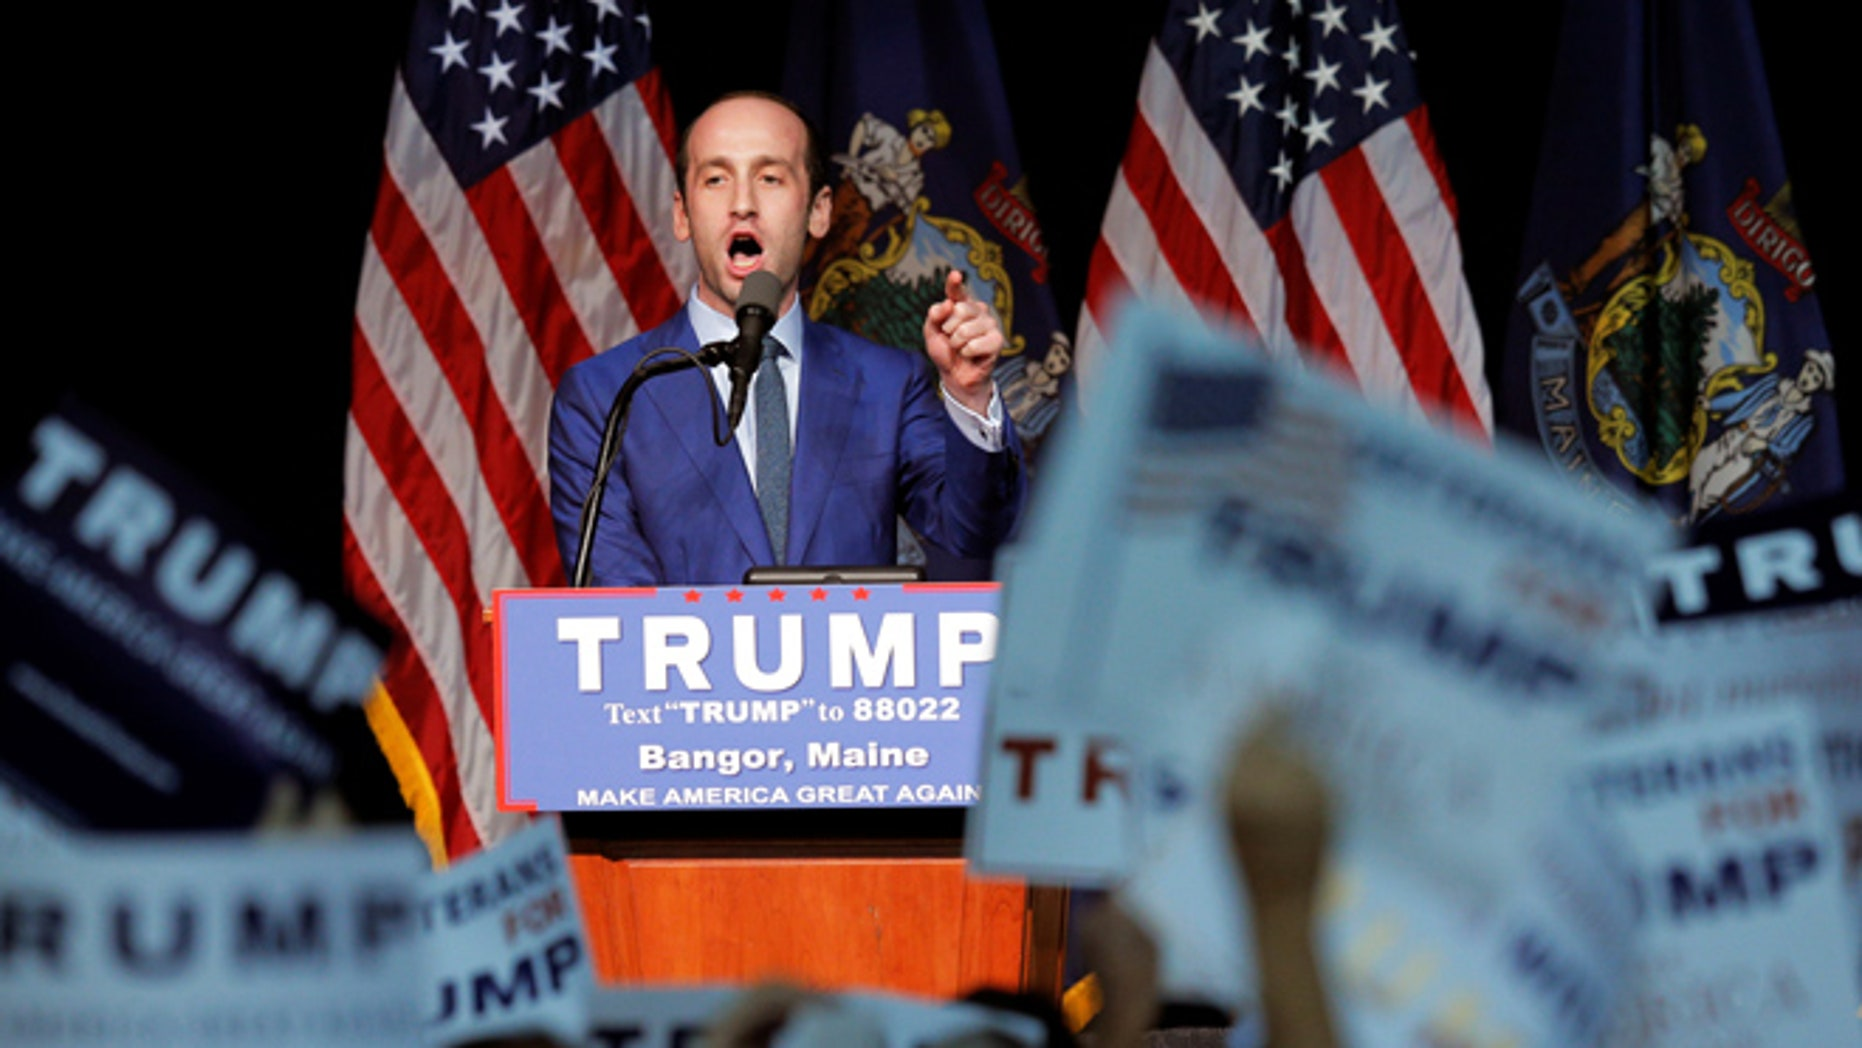 Stephen Miller, a senior policy and immigration advisor for U.S. Republican presidential candidate Donald Trump, speaks at a campaign rally in Bangor, Maine, June 29, 2016. REUTERS/Brian Snyder - RTX2IXXG